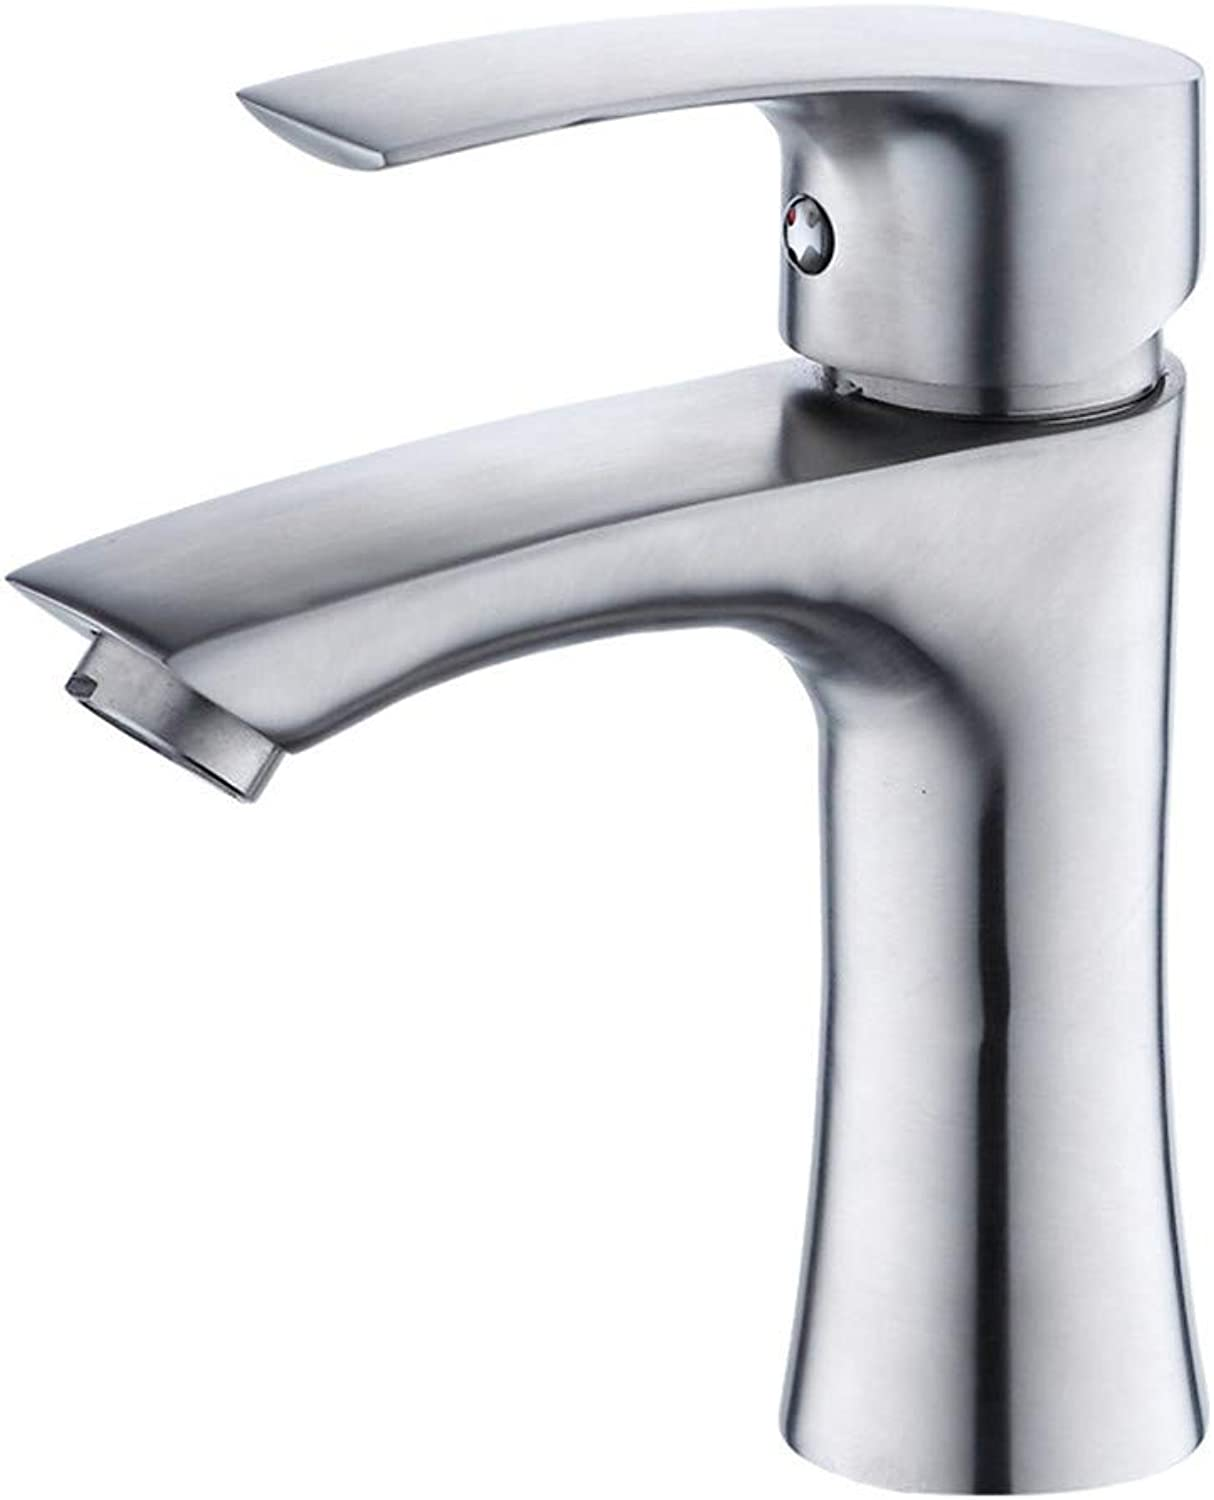 Decorry Mixer 304 Stainless Steel Basin Heeled Toilet Basin Faucet WashbasinS65-UE6589321747